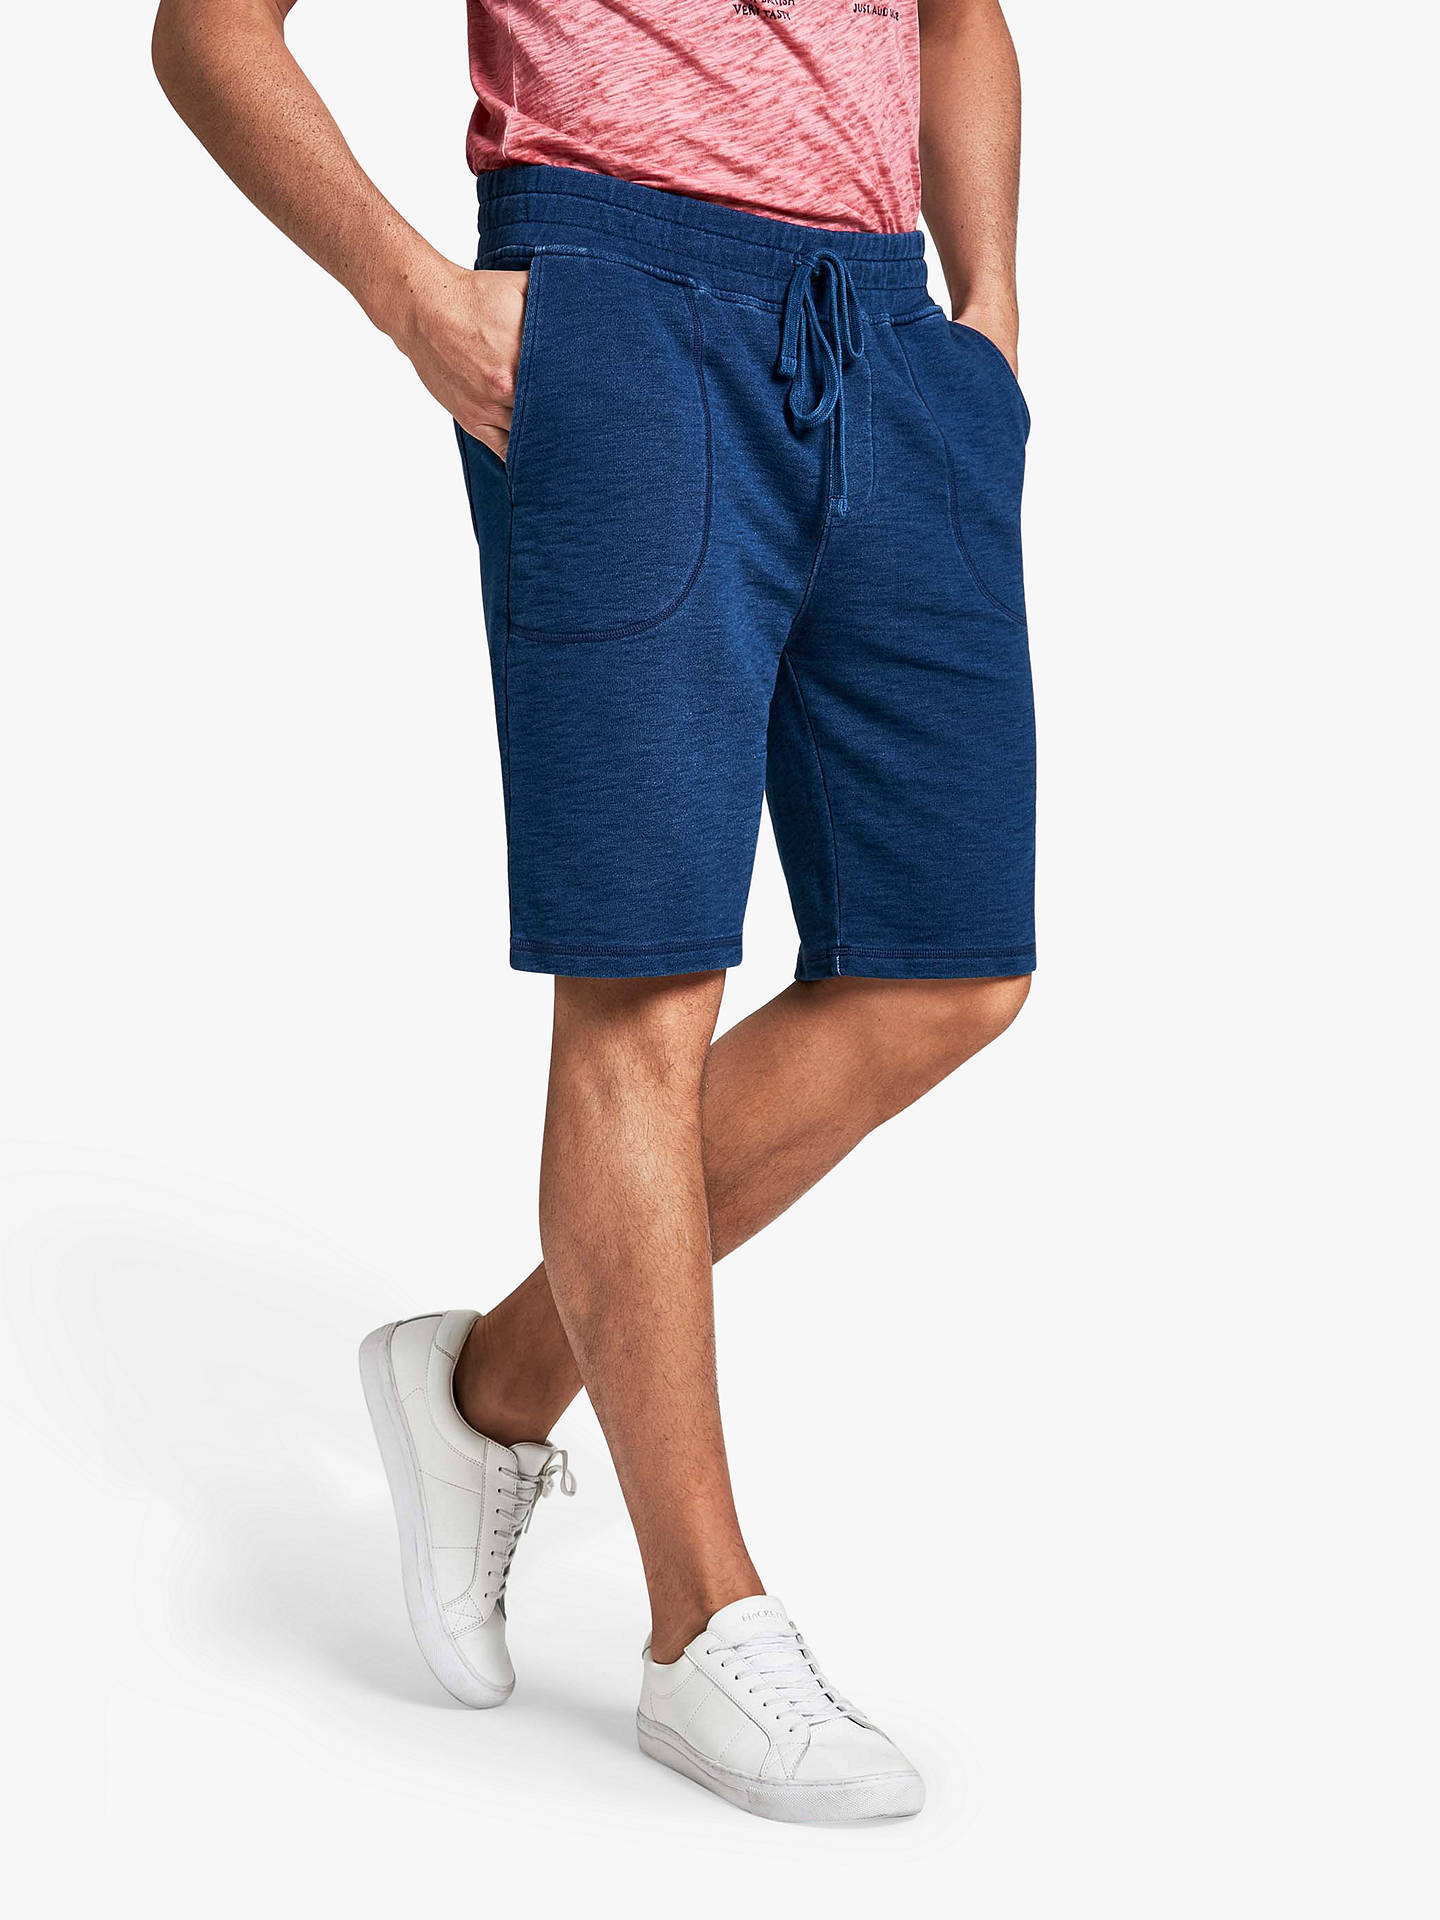 HKT Loopback Branded Lounge Shorts at John Lewis   Partners ac8a5119a3